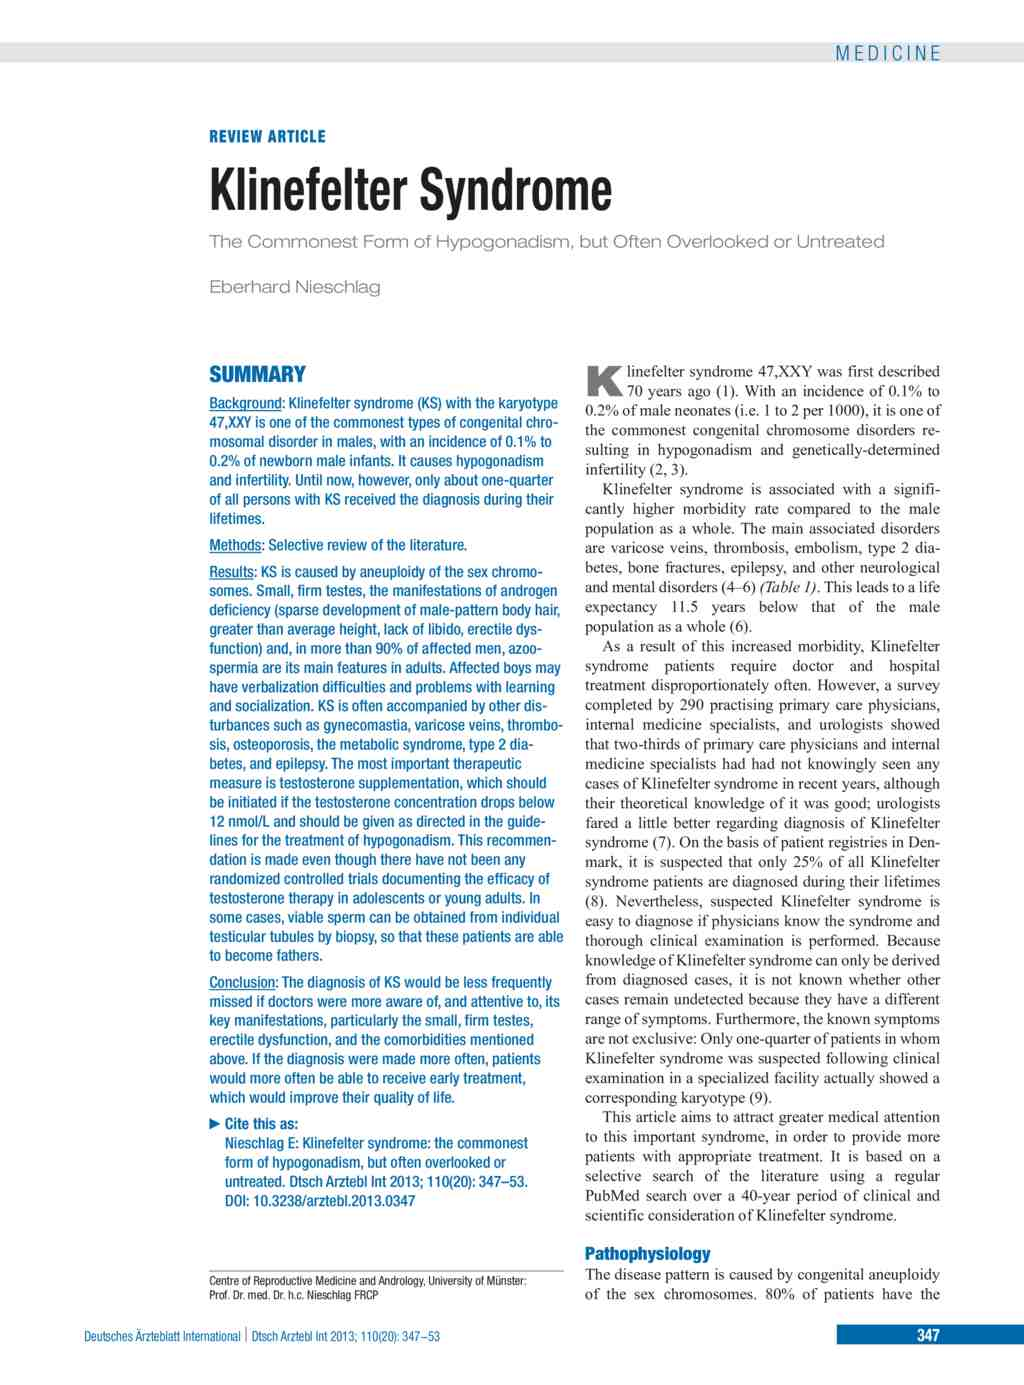 the symptoms and effects of klinefelter syndrome a genetic disorder affecting males